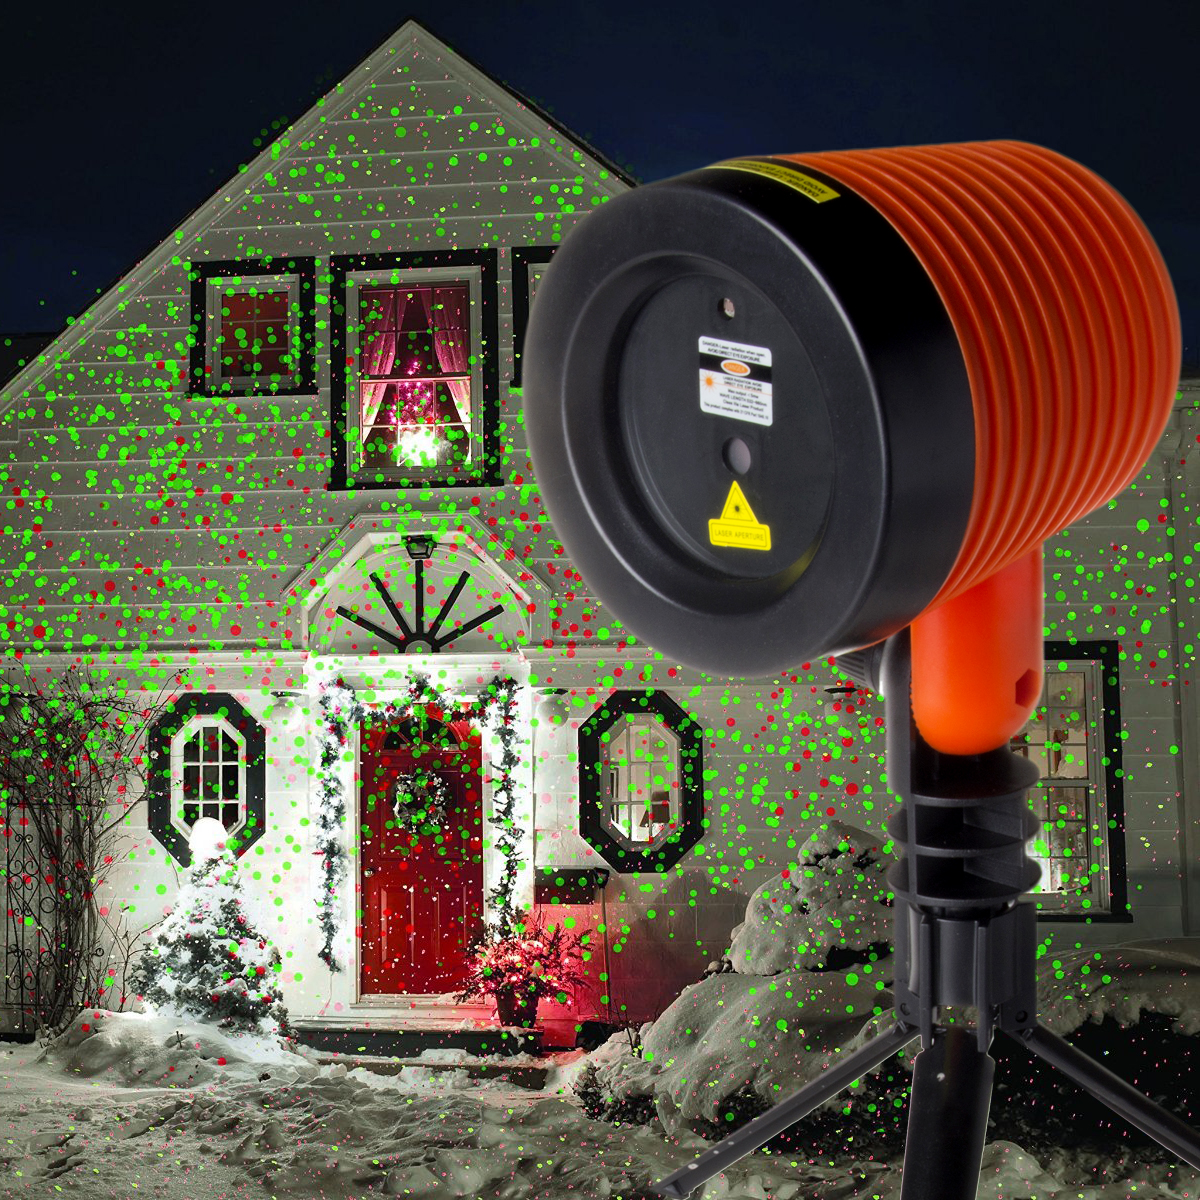 stargazer laser light show projector remote indoor or outdoor christmasholiday party star shower walmartcom